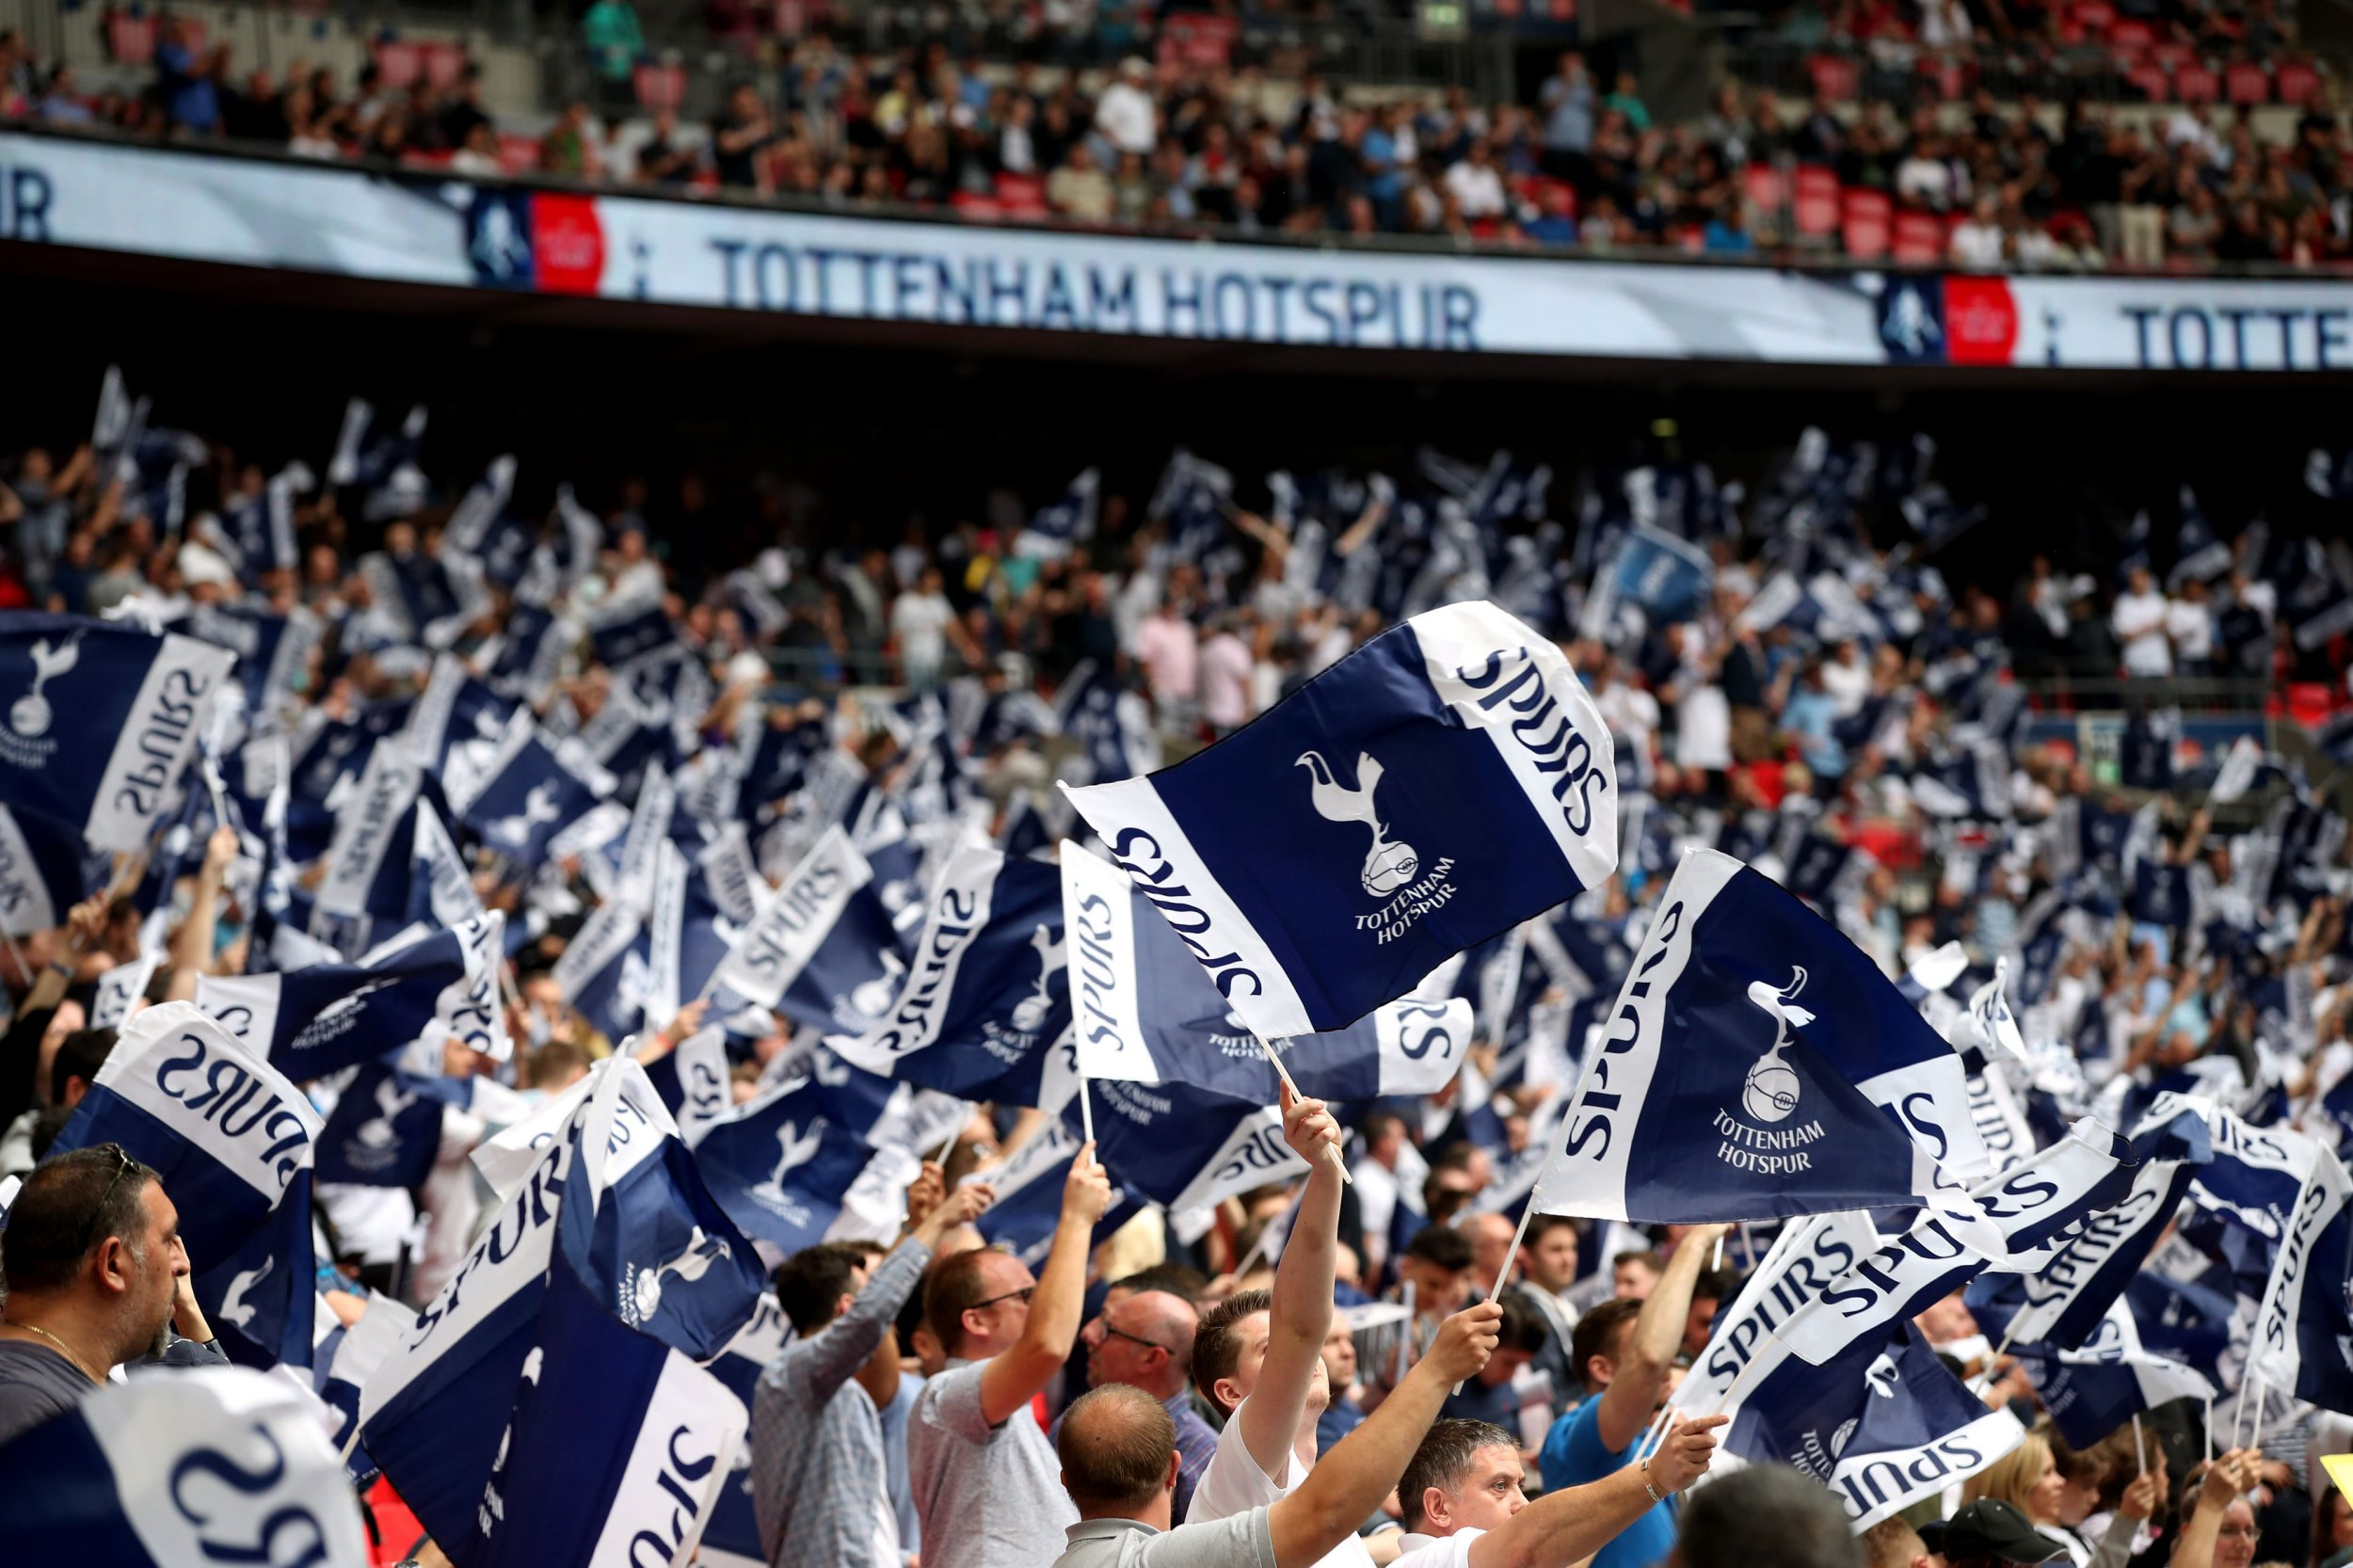 """Tottenham Hotspur fans in the stands during the Emirates FA Cup semi-final match at Wembley Stadium, London. PRESS ASSOCIATION Photo. Picture date: Saturday April 21, 2018. See PA story SOCCER Man Utd. Photo credit should read: Adam Davy/PA Wire. RESTRICTIONS: EDITORIAL USE ONLY No use with unauthorised audio, video, data, fixture lists, club/league logos or """"live"""" services. Online in-match use limited to 75 images, no video emulation. No use in betting, games or single club/league/player publications."""